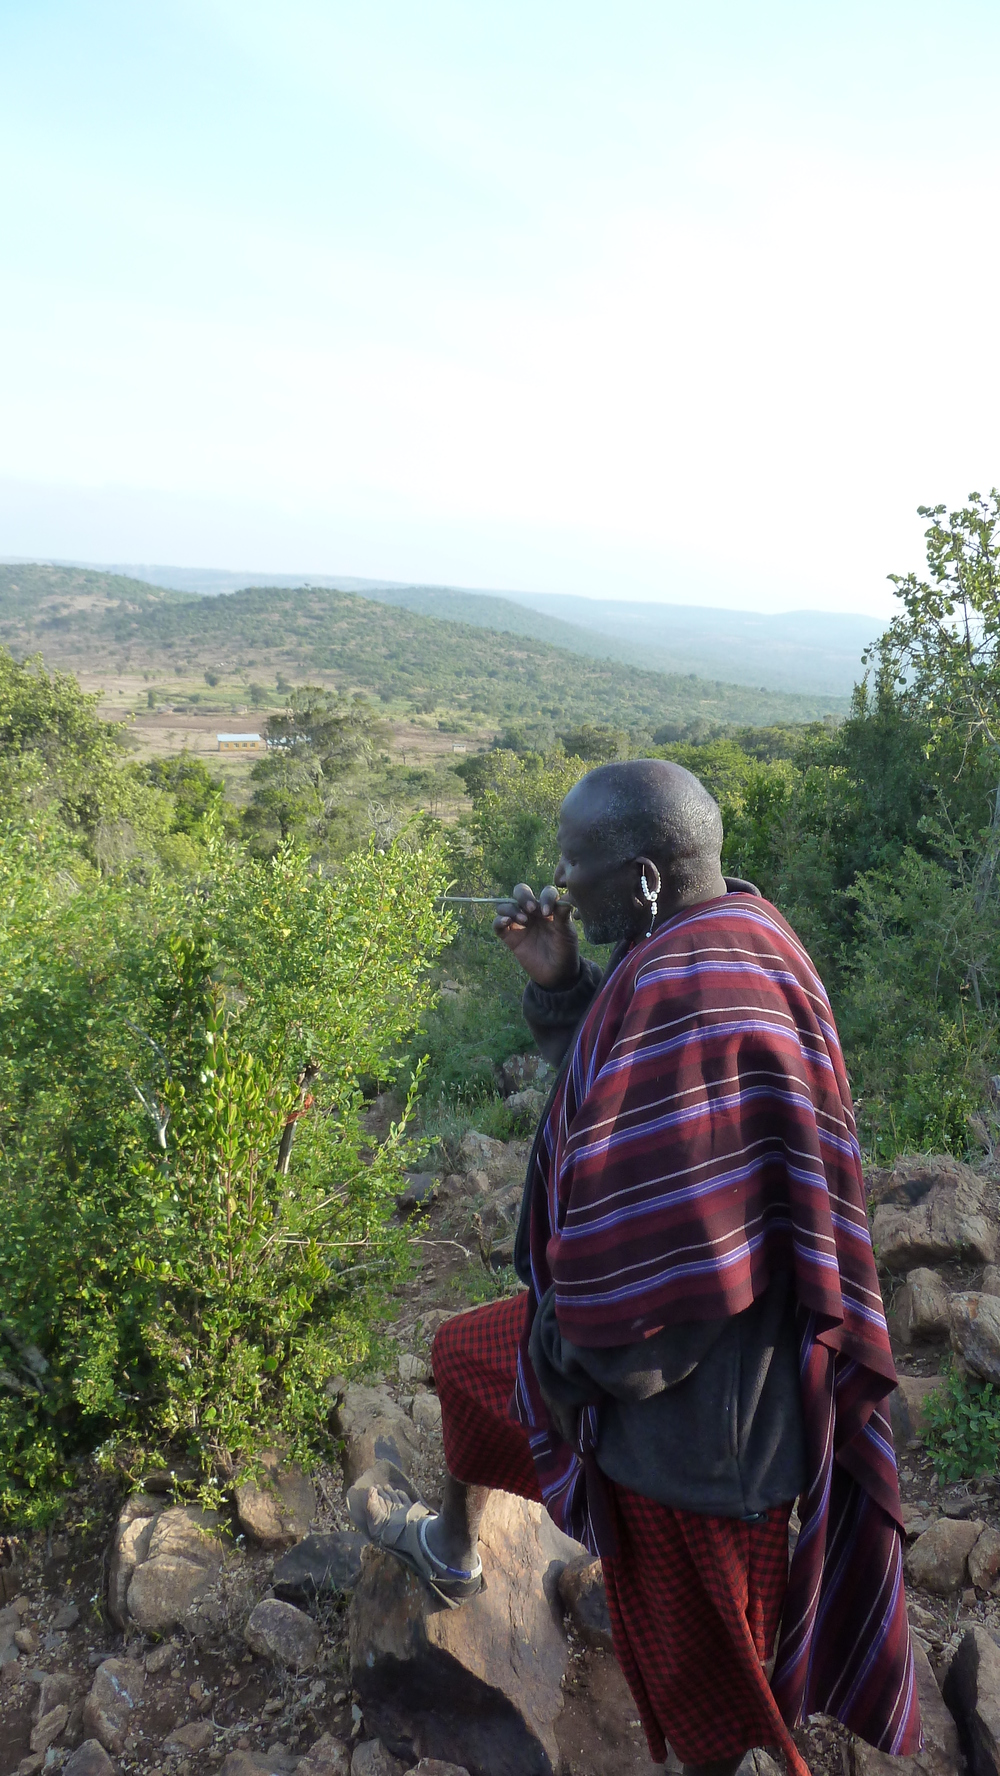 A Maasai elder chewing a twig from a tree nicknamed 'the toothbrush tree' during an expedition to find medicinal plants.JPG